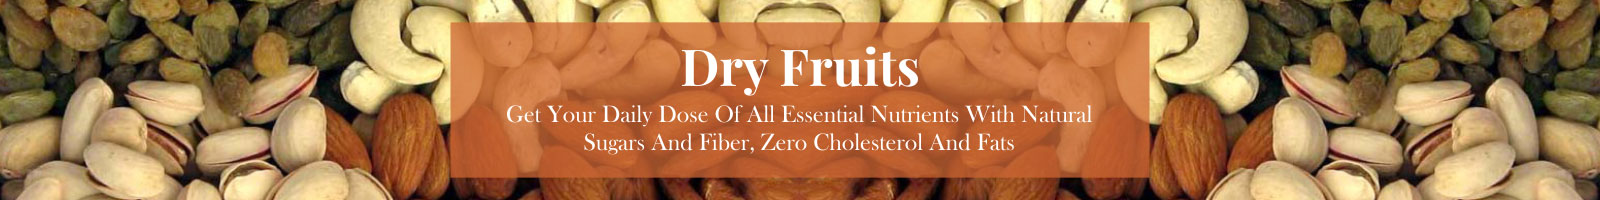 Organic Nuts,Seeds & Dry Fruits